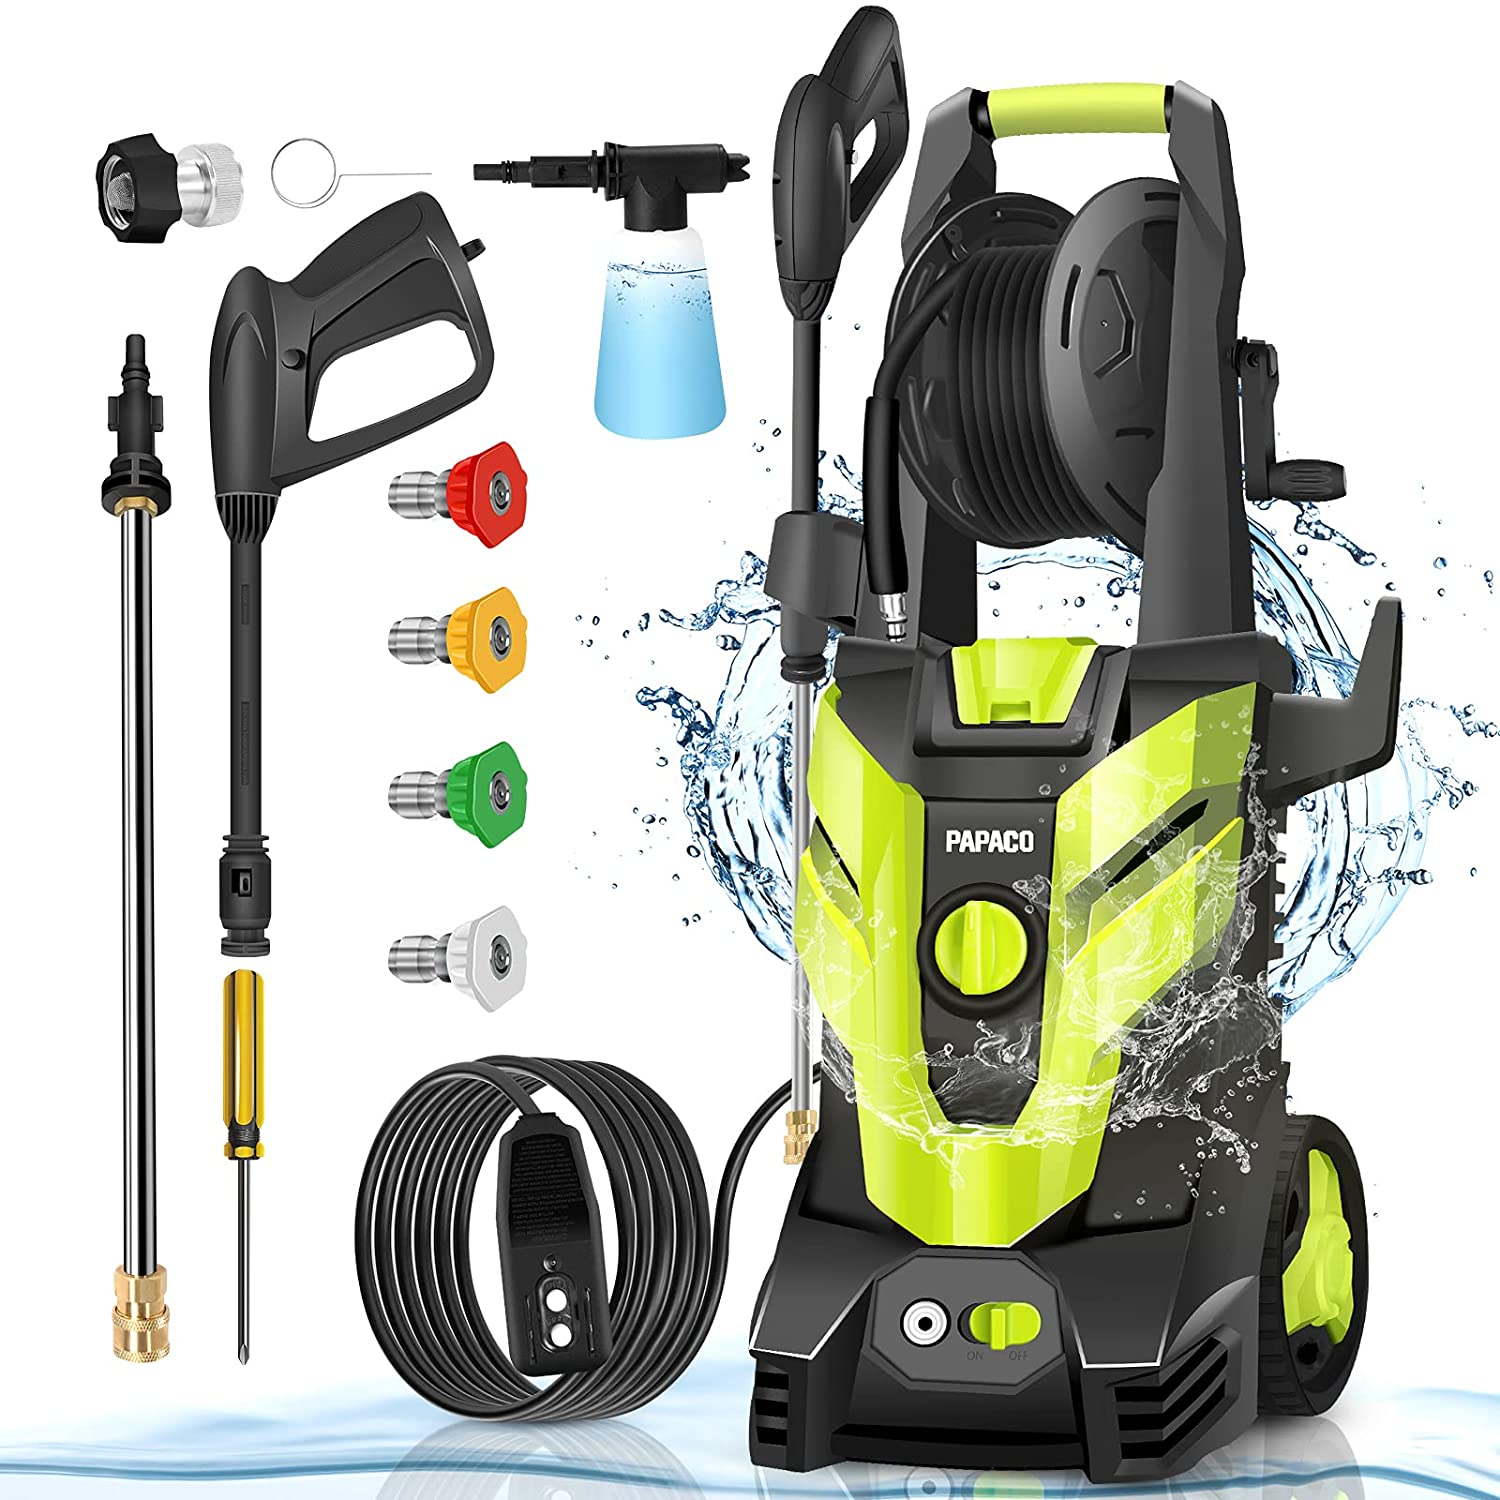 Papaco Electric Pressure Washer Same day shipping Max 3600 2.4 GPM PSI Our shop most popular Elec 1800W